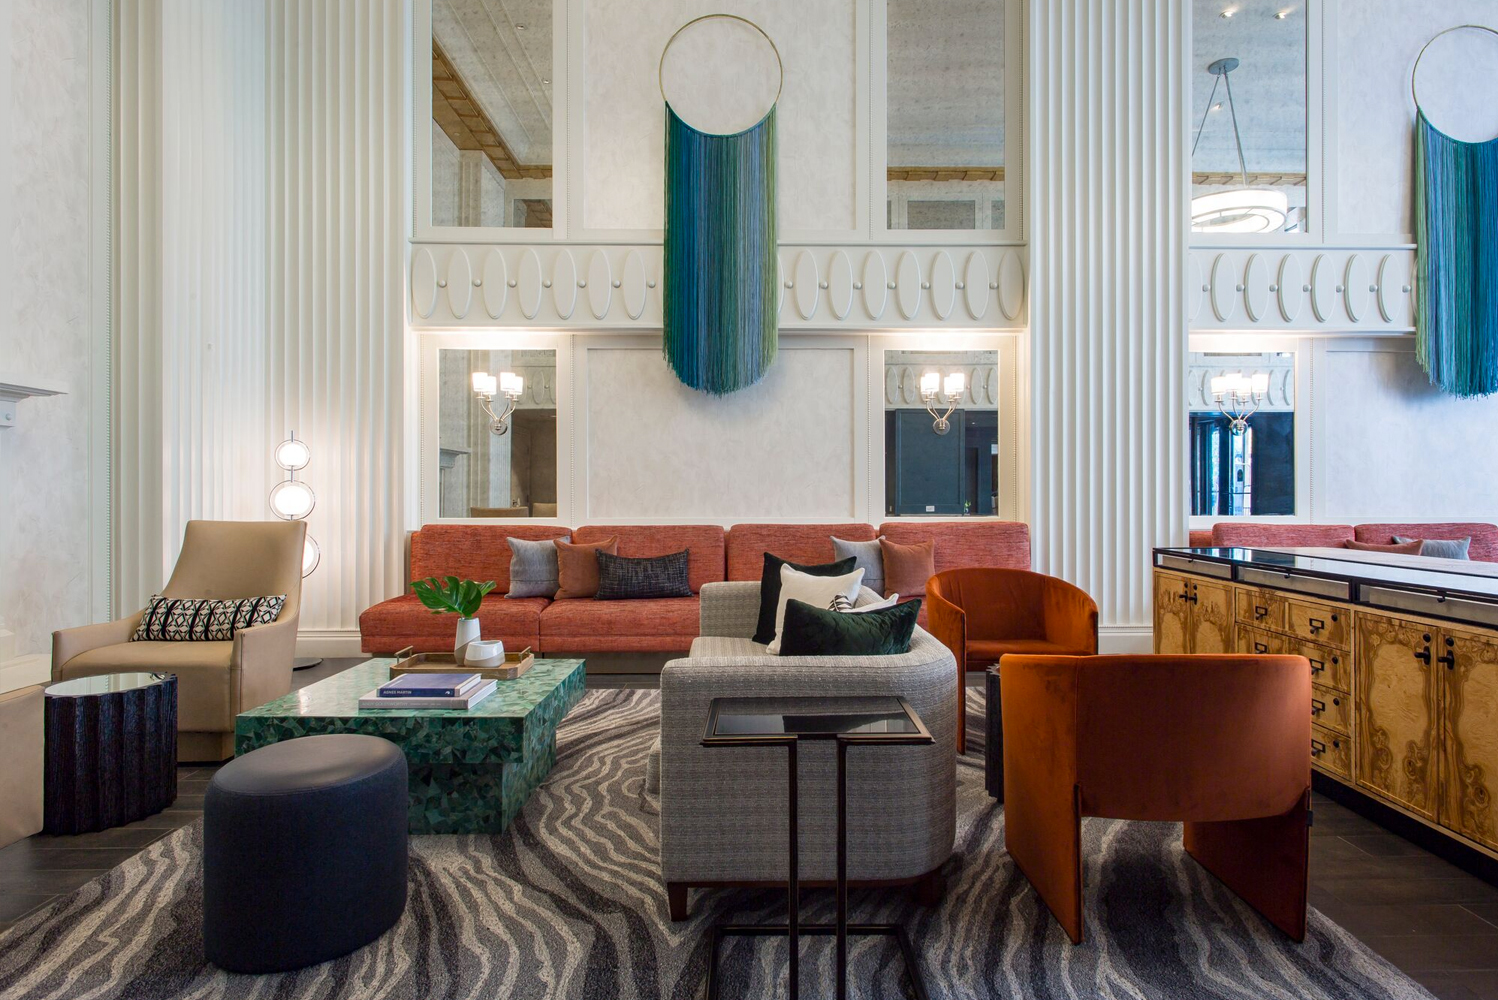 Kimpton Hotel Monaco Chicago completed a full renovation of its lobby, guestrooms and suites.